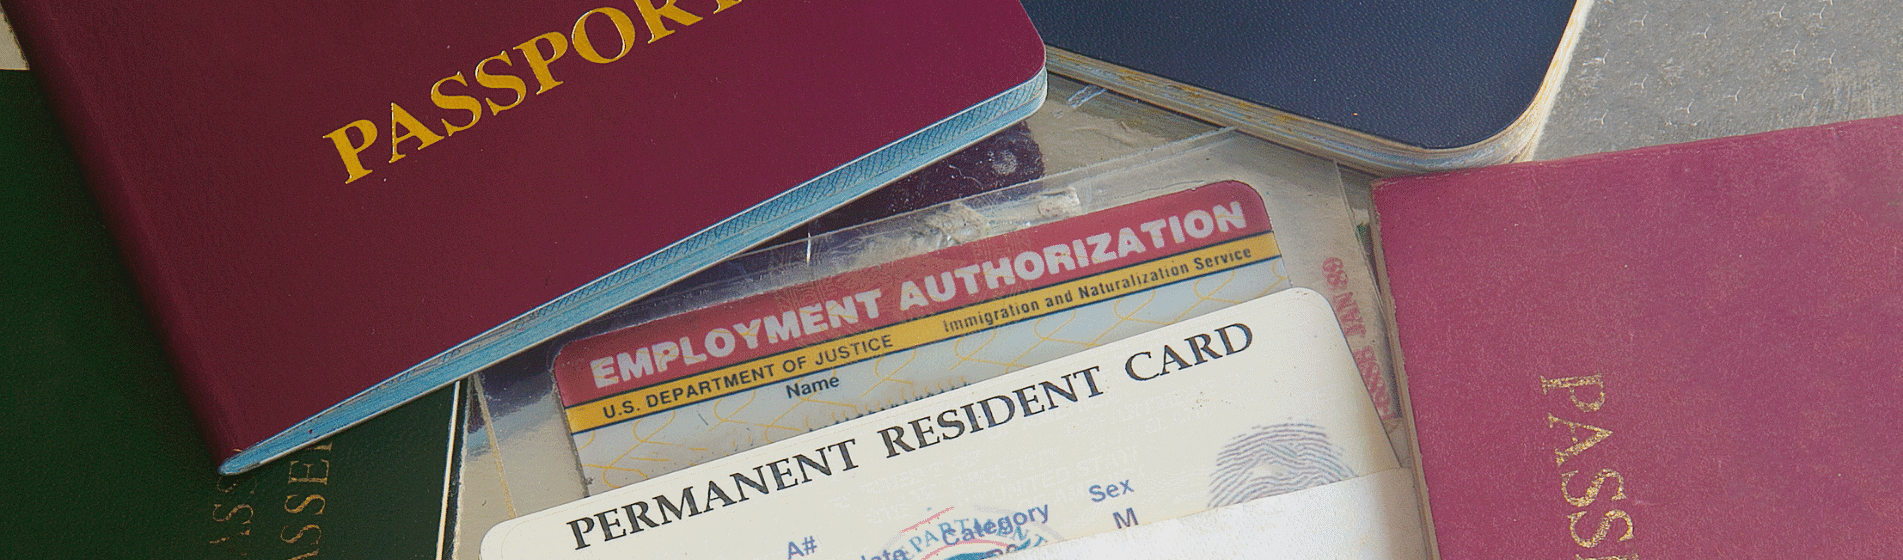 7 Countries Where You Can't Get Citizenship by Residency